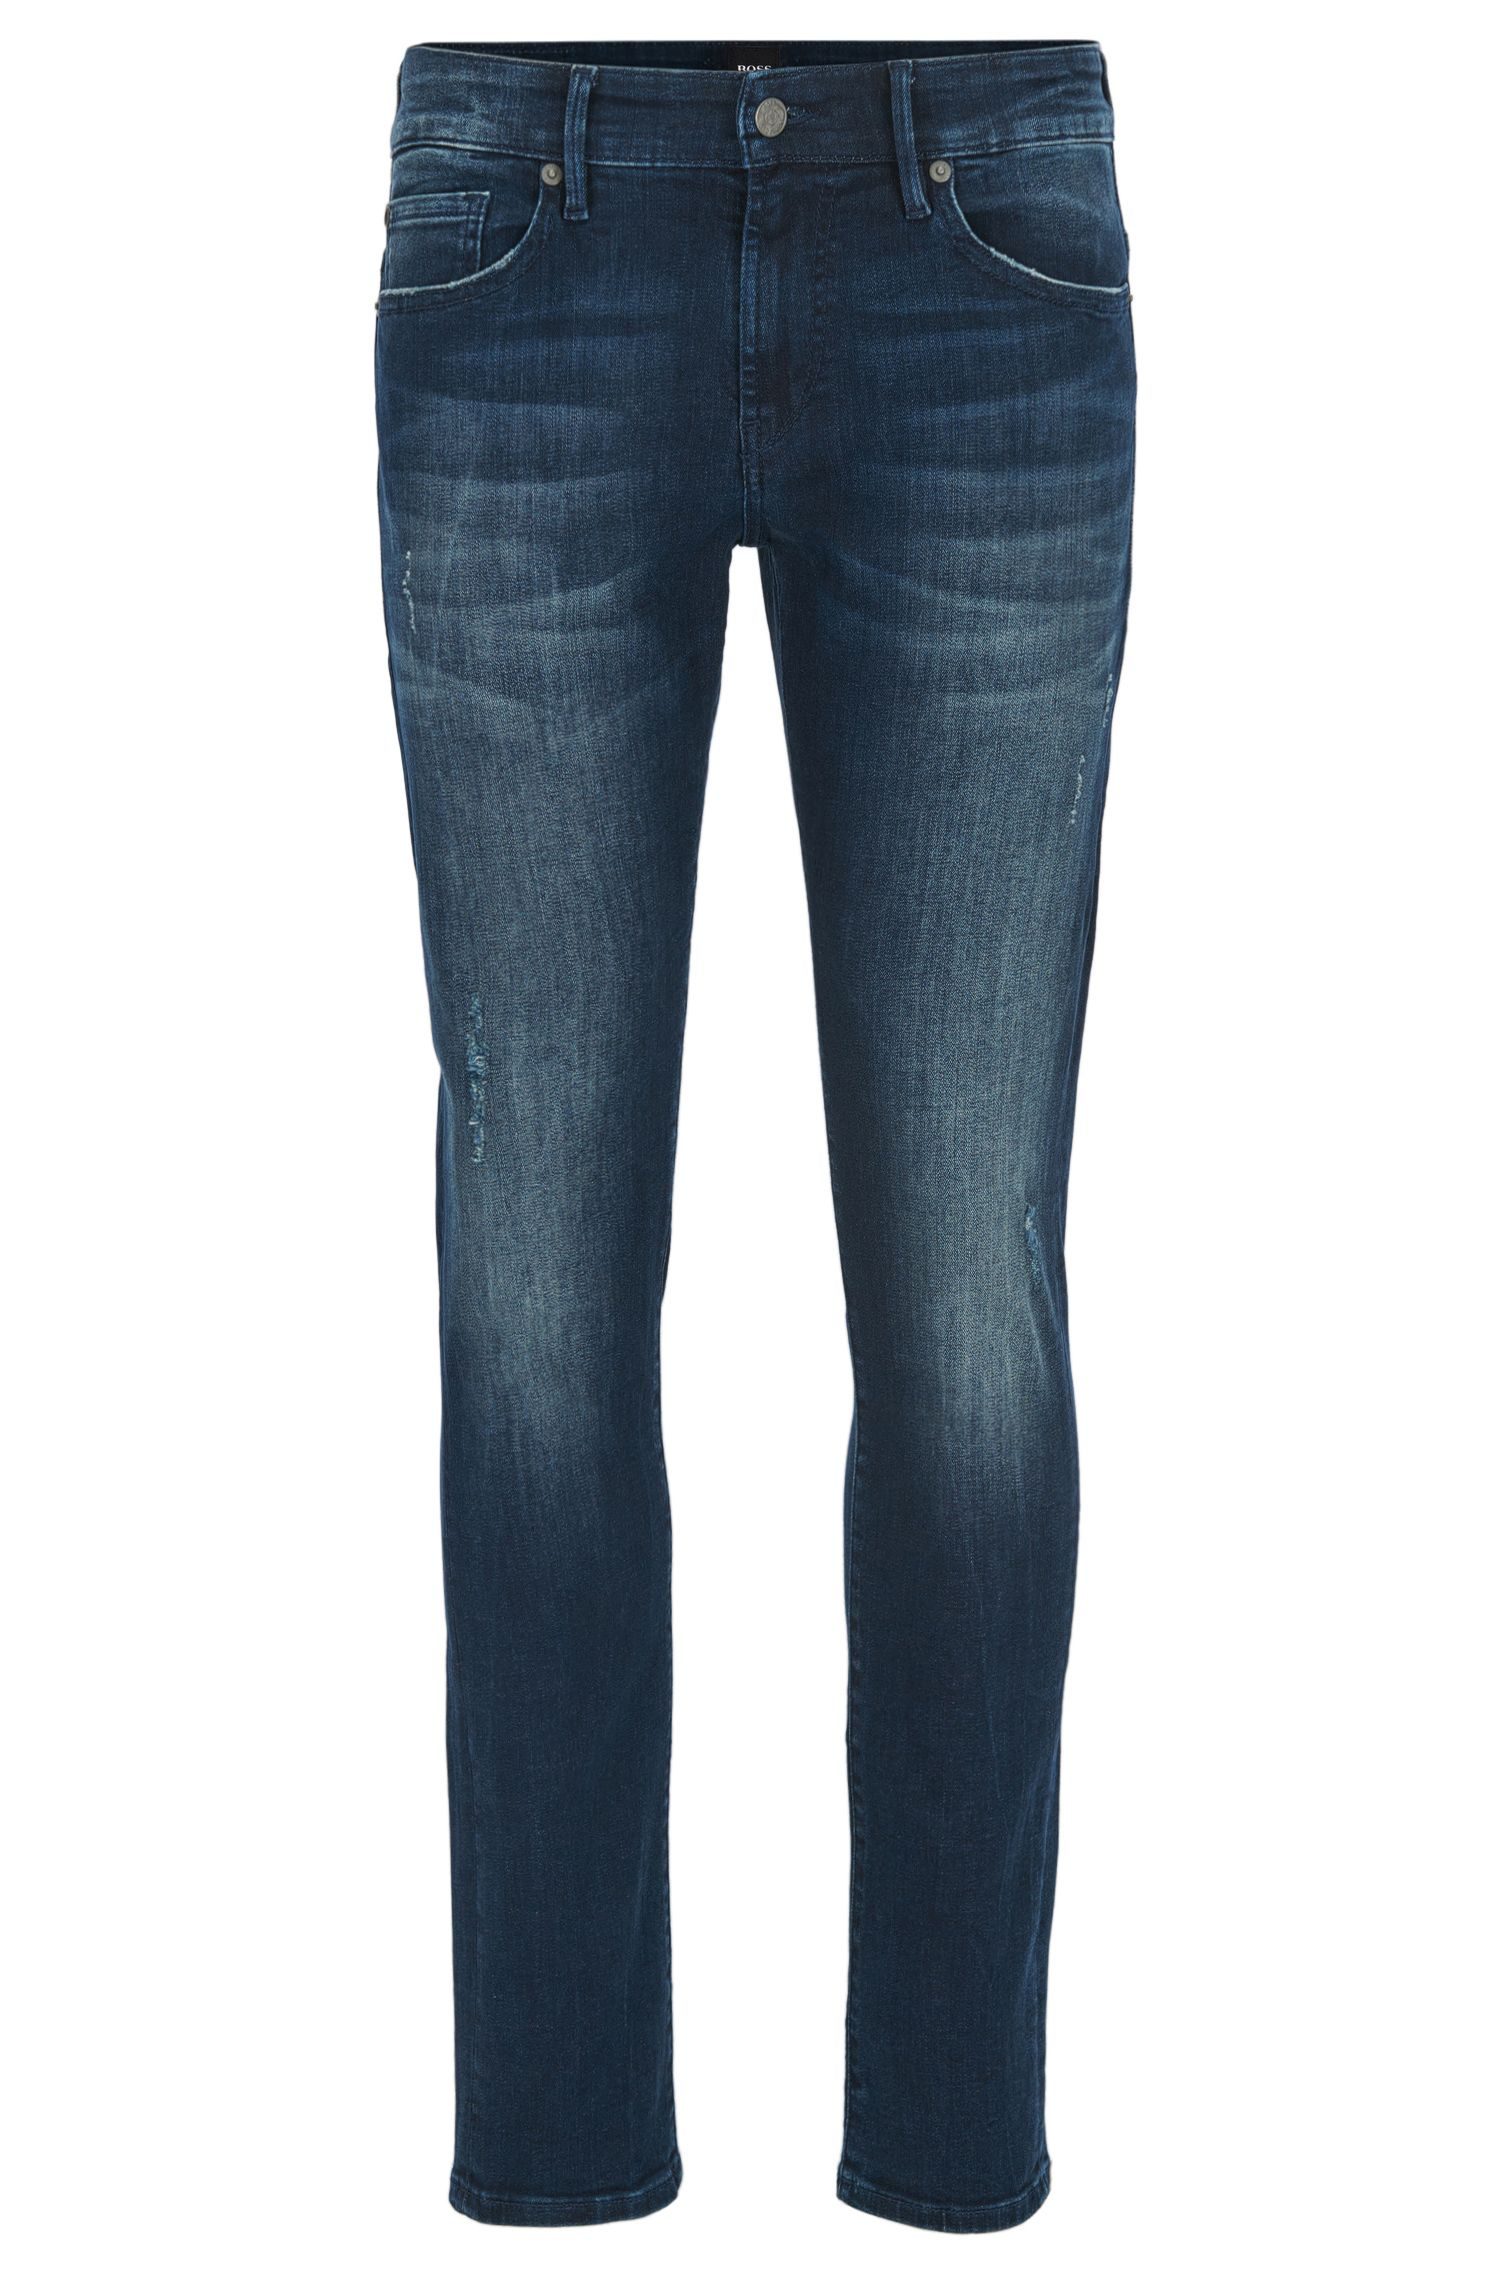 Jean Skinny Fit super stretch de couleur indigo profond